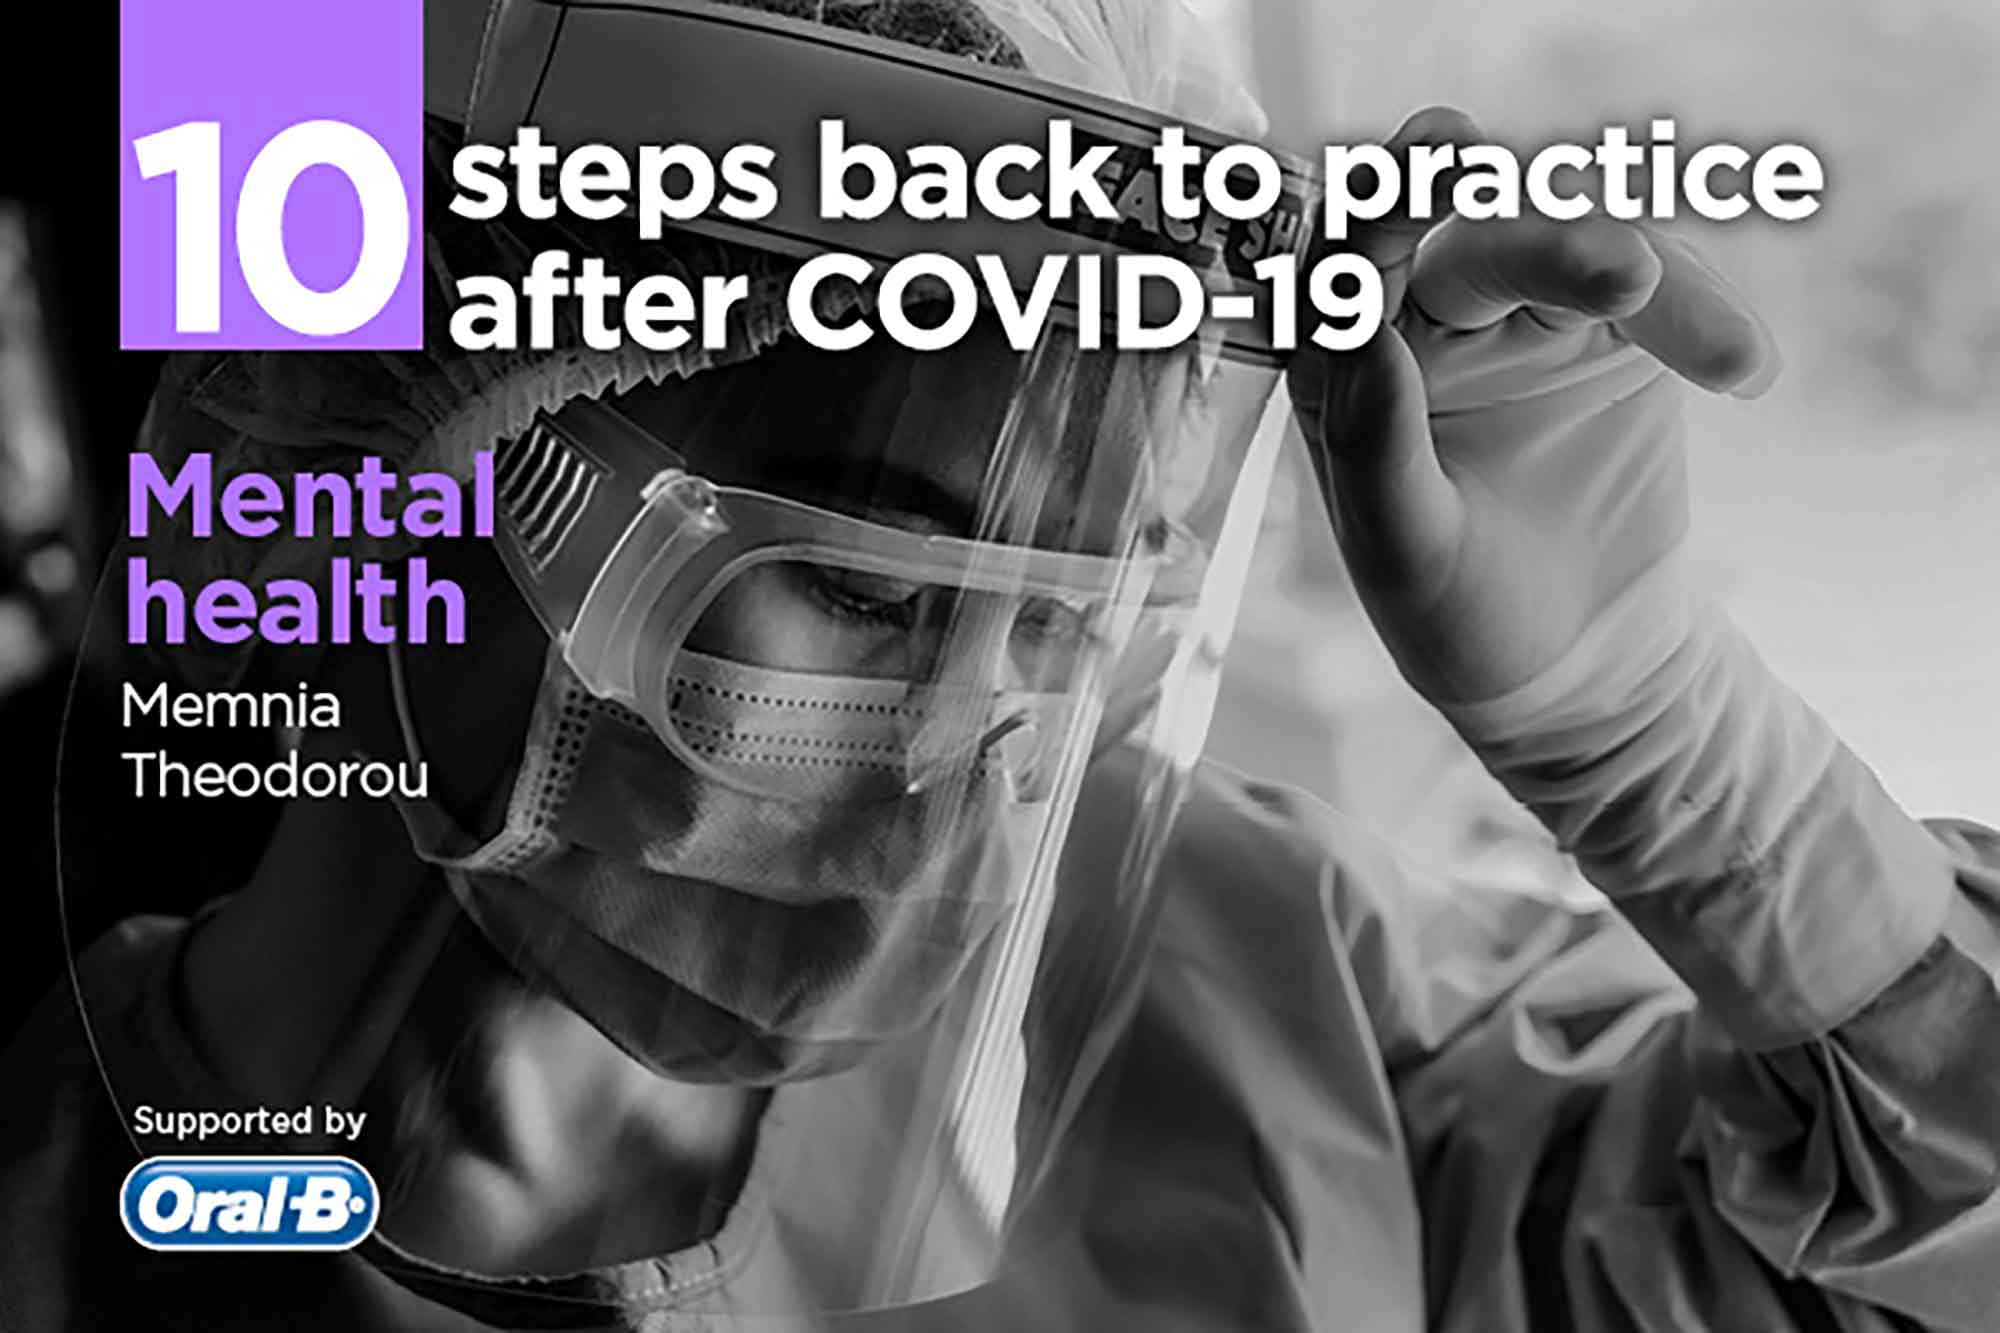 Memnia Theodorou discusses mental health and how dental professionals can change their way of thinking for more positive and healthy outcomes